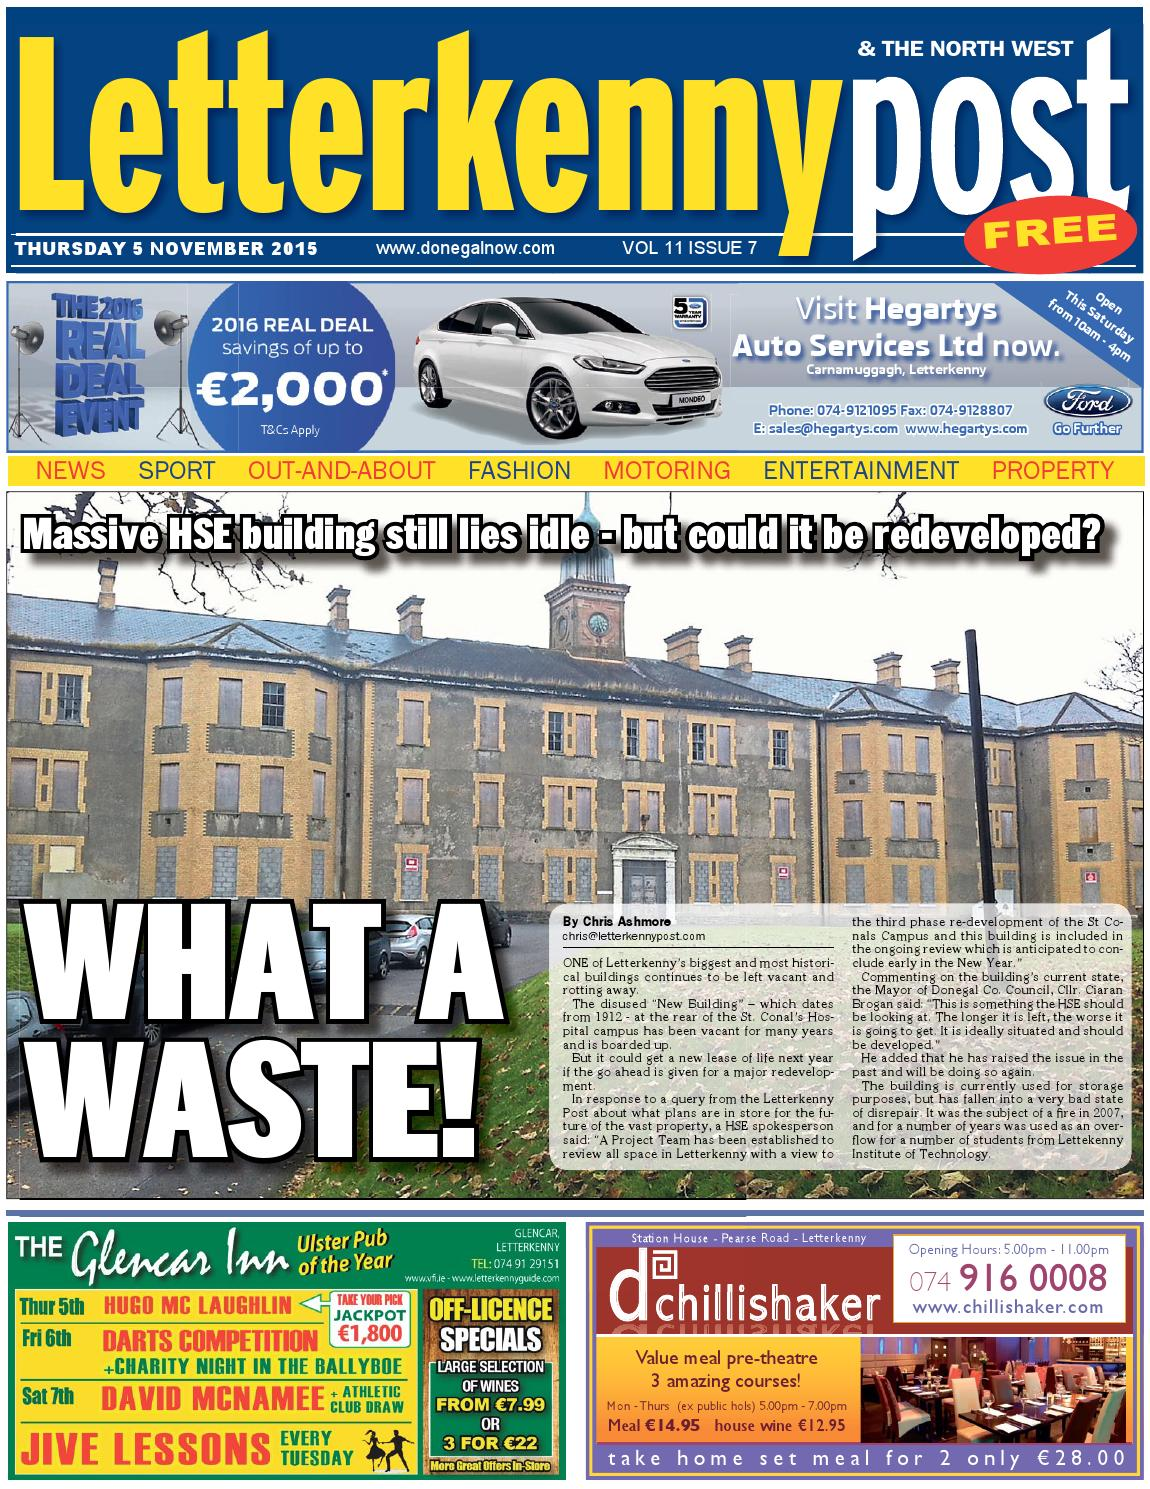 Letterkenny post 05 11 15 by River Media Newspapers - issuu a62af4b32